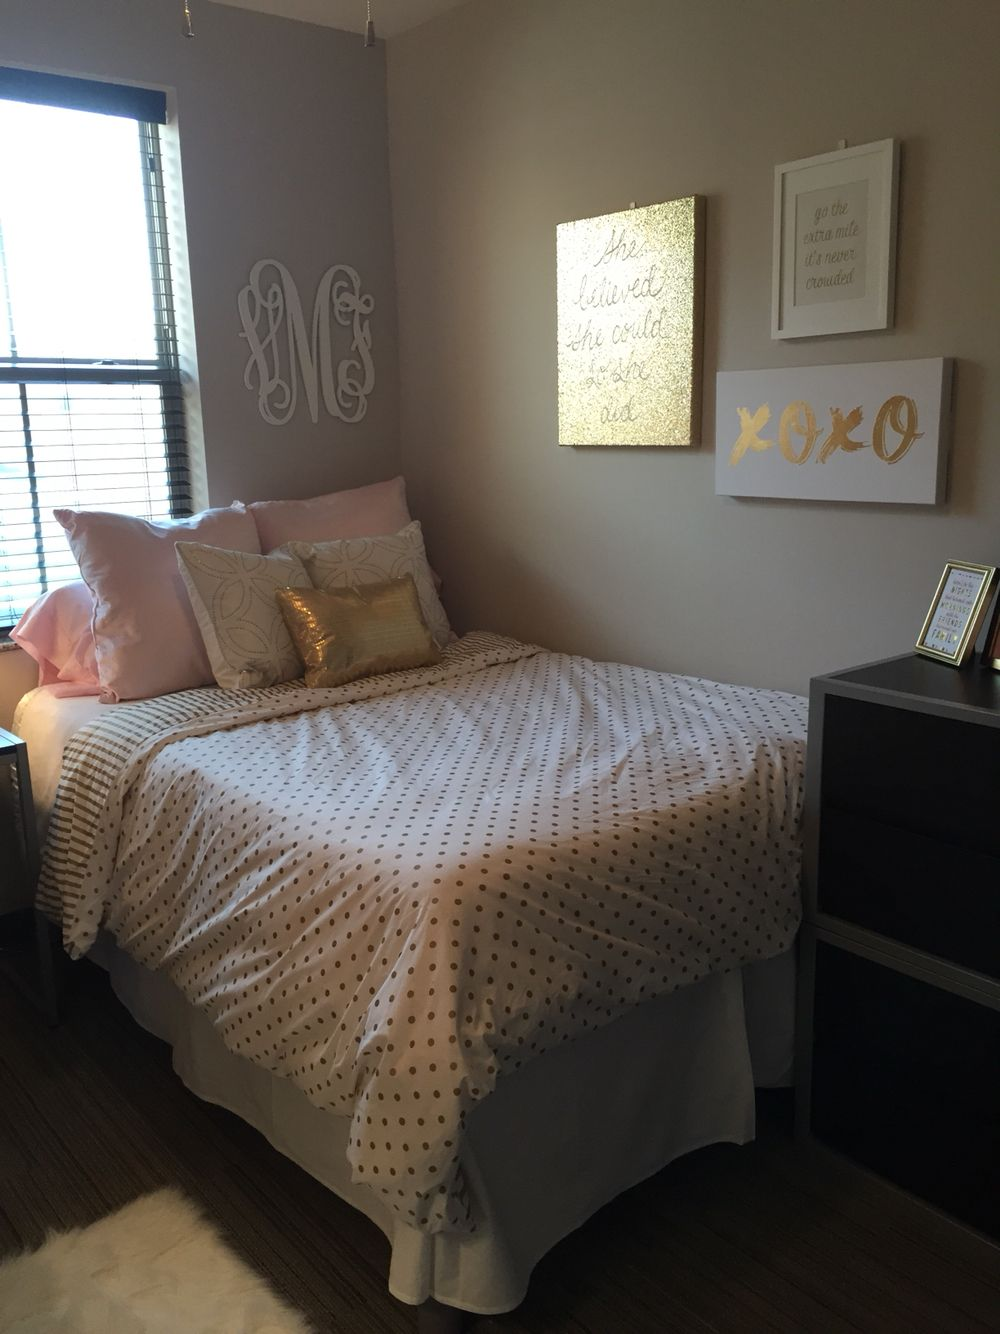 Dorm Room Layouts: University Of Kentucky Dorm Room With PBteen Sheets